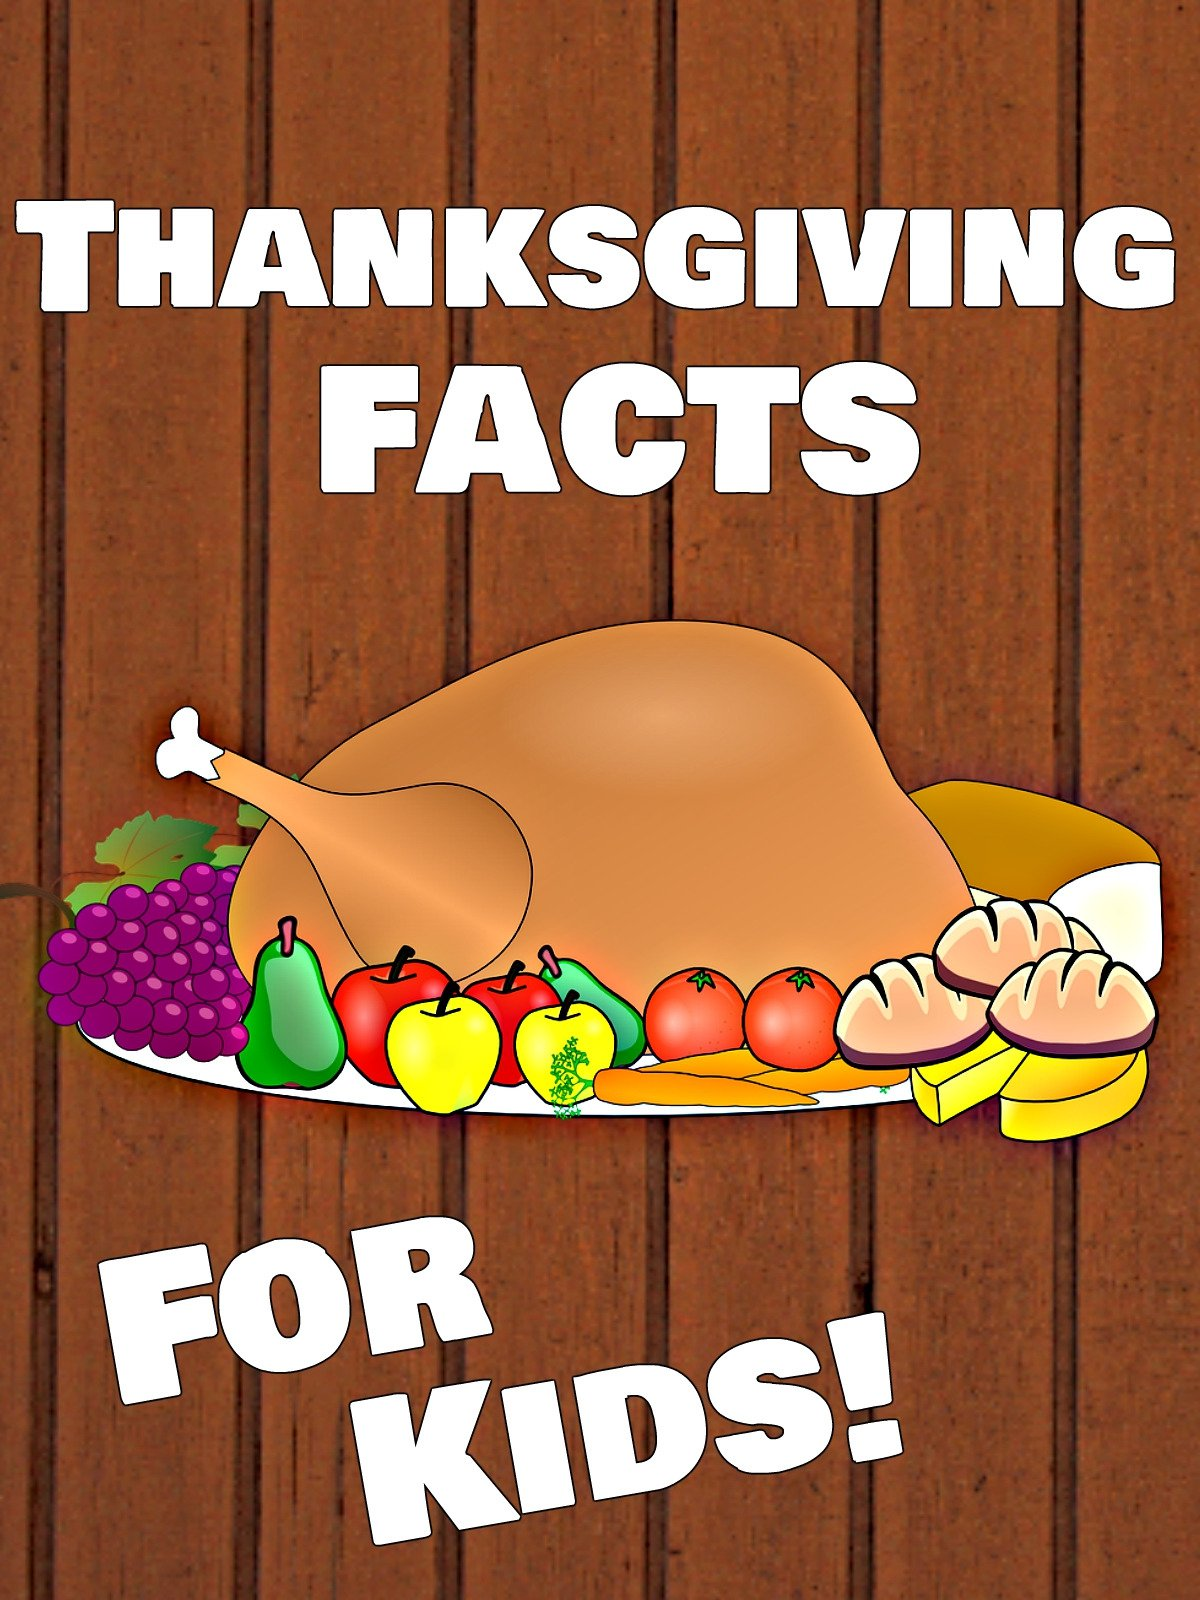 Thanksgiving Facts for Kids!